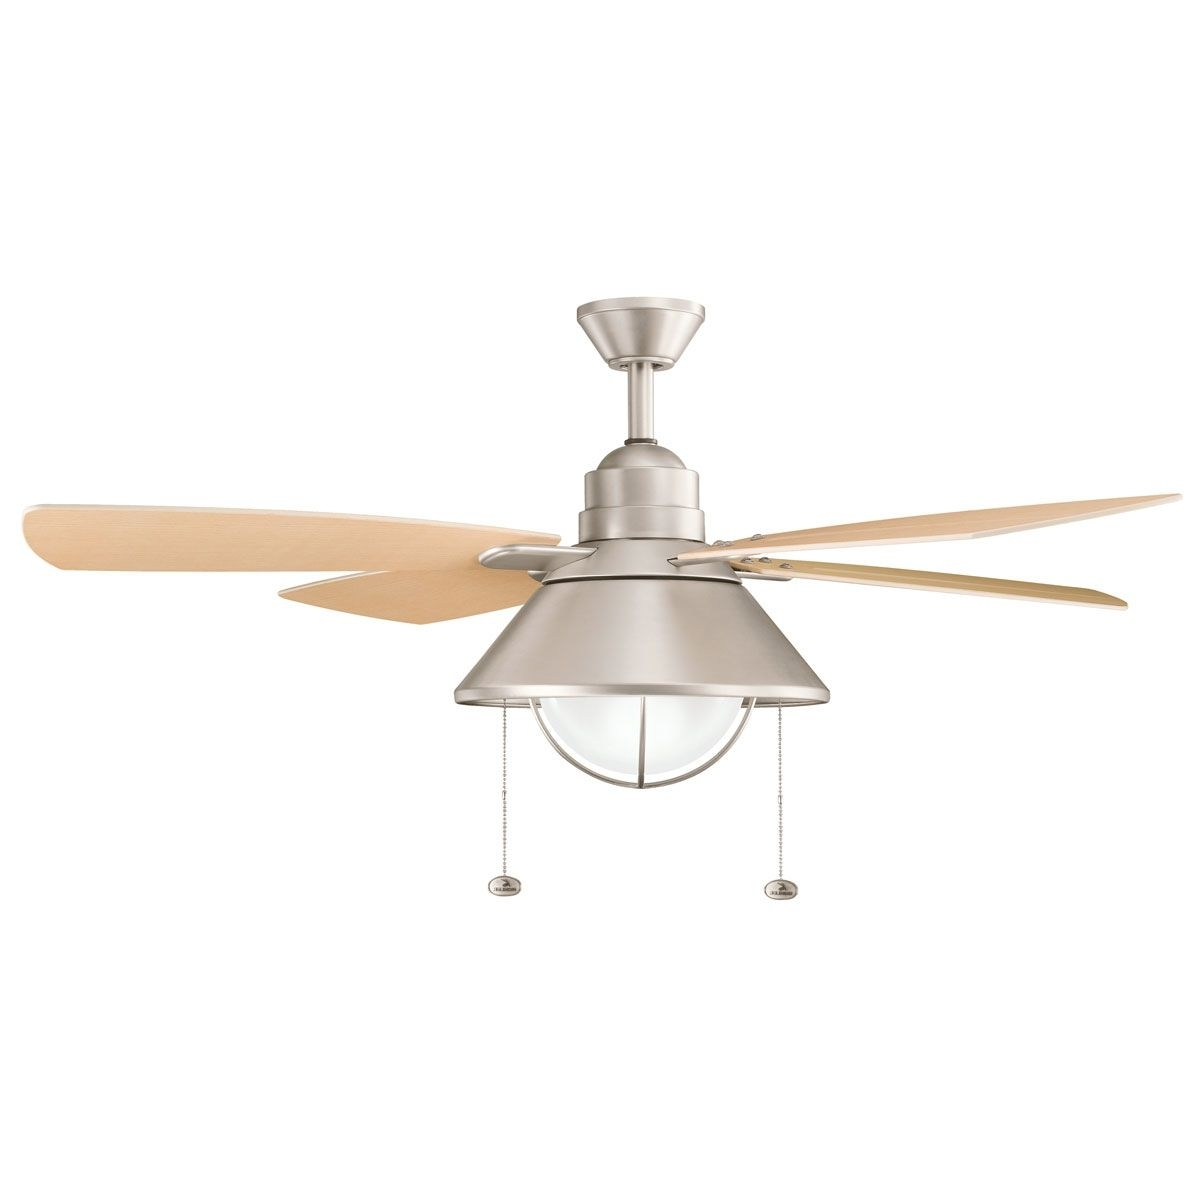 Brushed Nickel Outdoor Ceiling Fans With Latest Kichler Fans Seaside Ceiling Fan In Brushed Nickel (View 16 of 20)